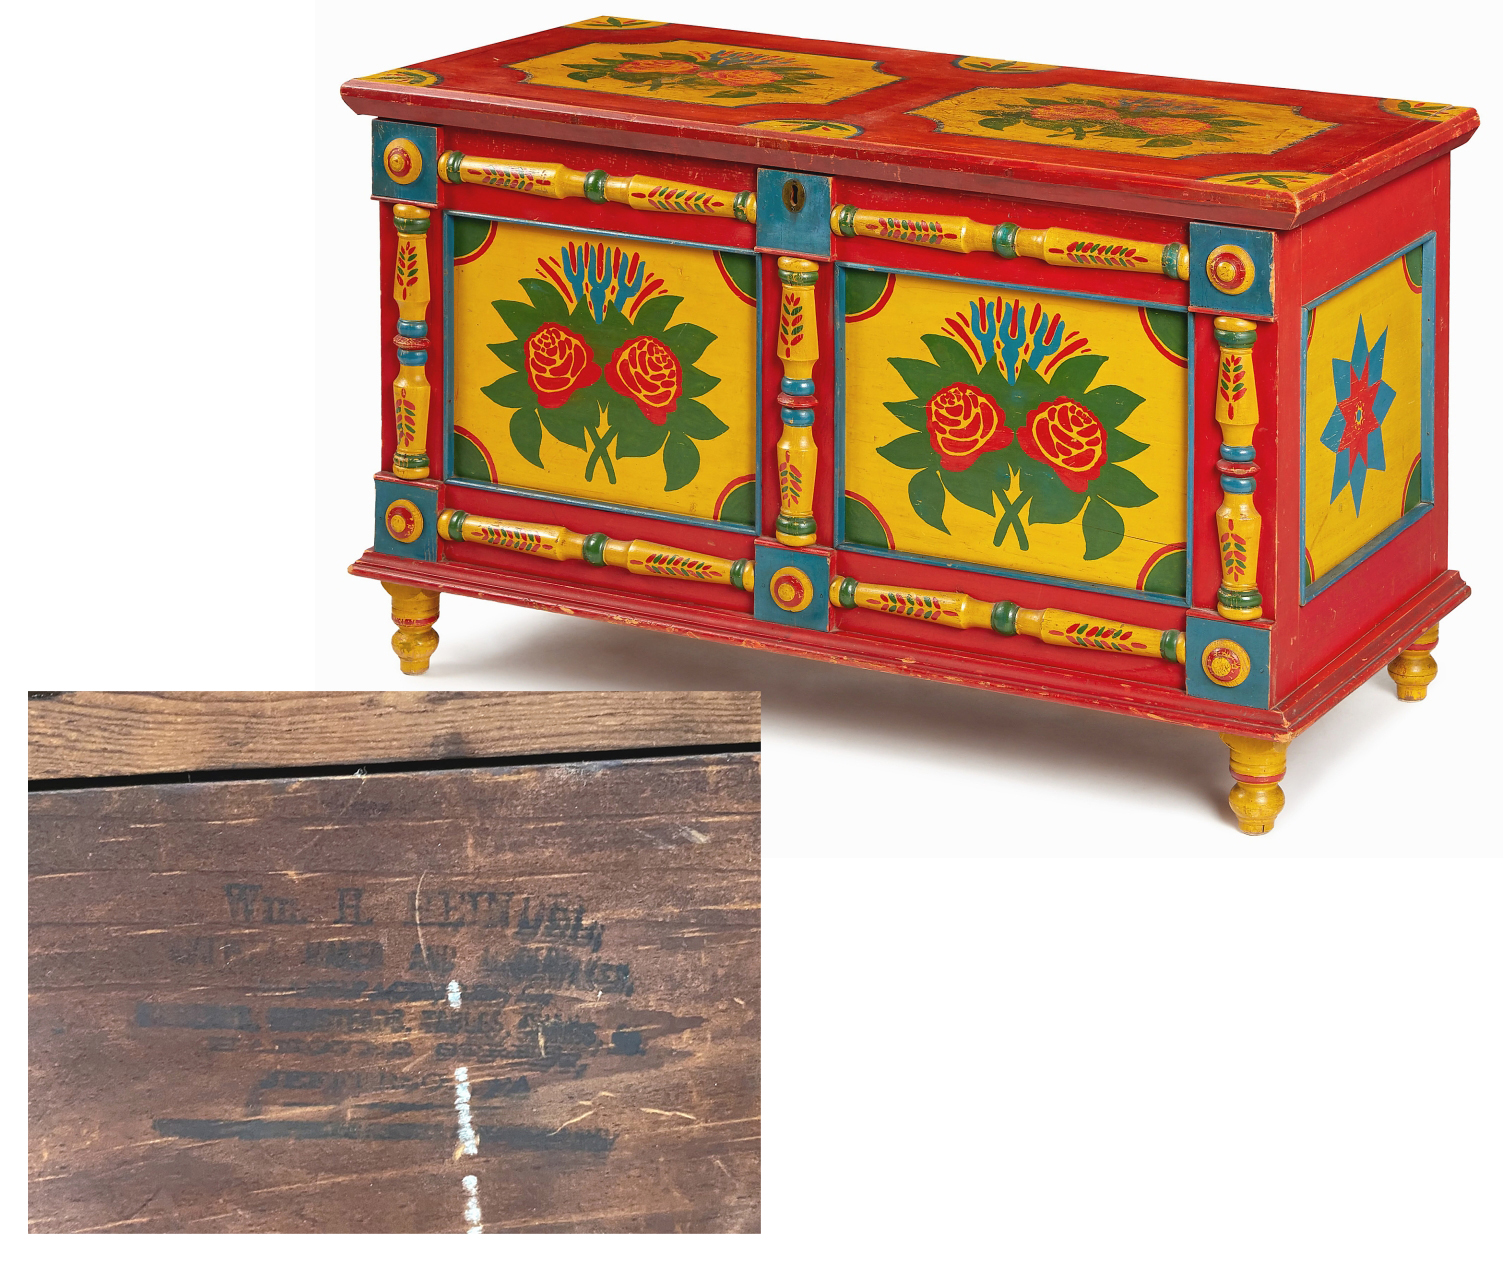 """The only found stamp on a """"Glen Rock"""" chest in a private collection has put a hand to the famed line of vibrantly painted Pennsylvania blanket chests that have earned renown among collectors. """"Wm H Heindel / Furnituremaker And Undertaker"""" lists his address in Jefferson, Penn., less than ten miles from Glen Rock, Penn."""